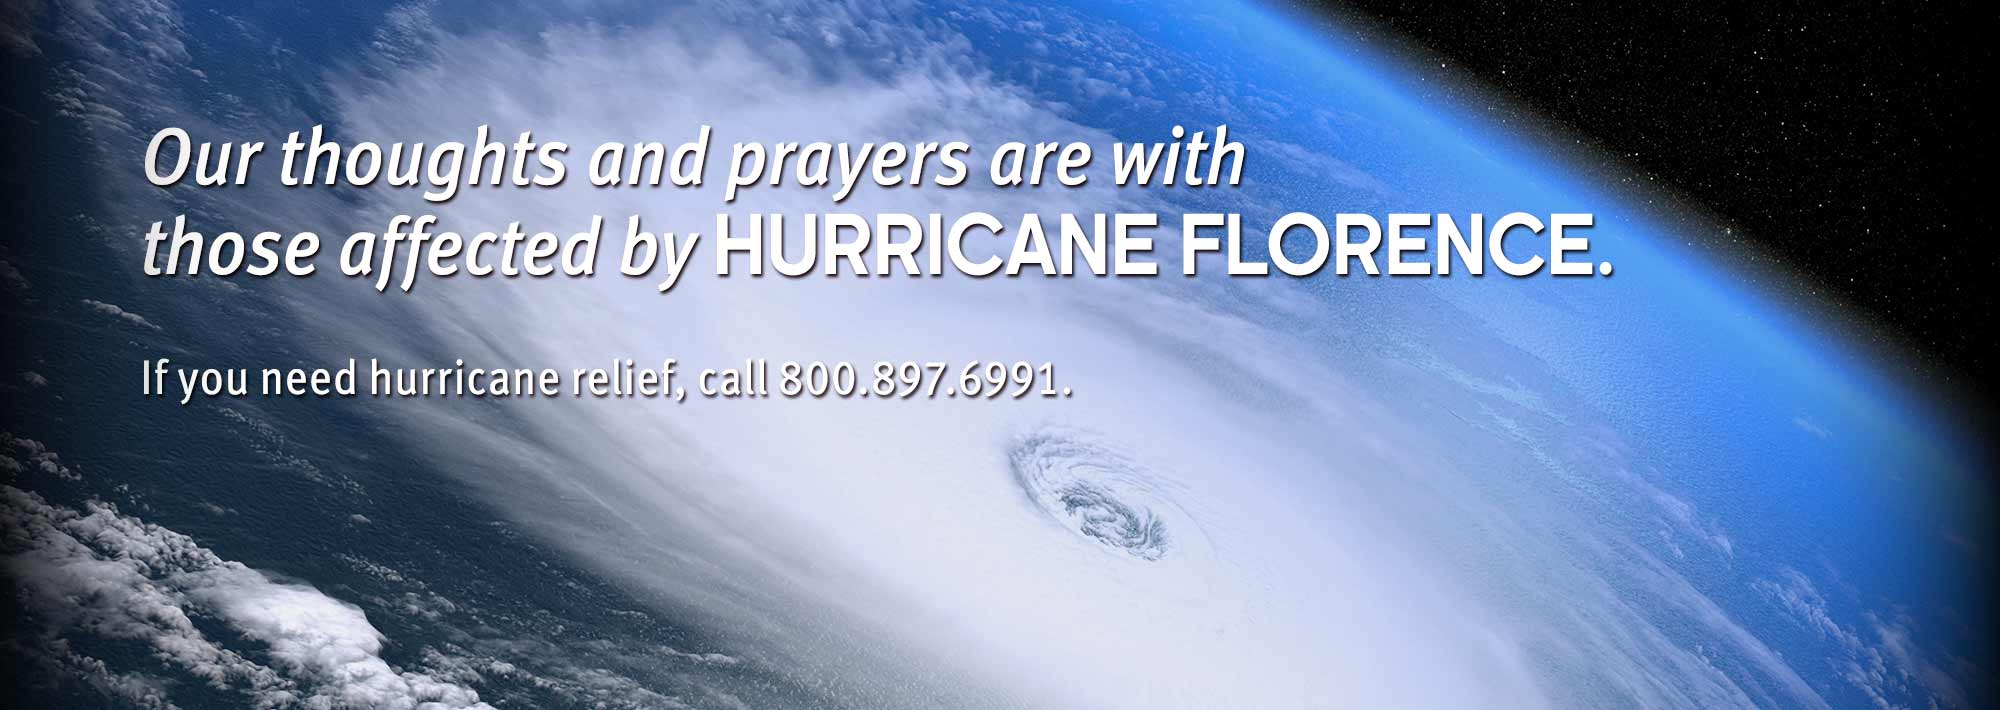 Our thoughts and prayers are with those affected by Hurricane Florence. If you need hurricane relief, call 800.897.6991.